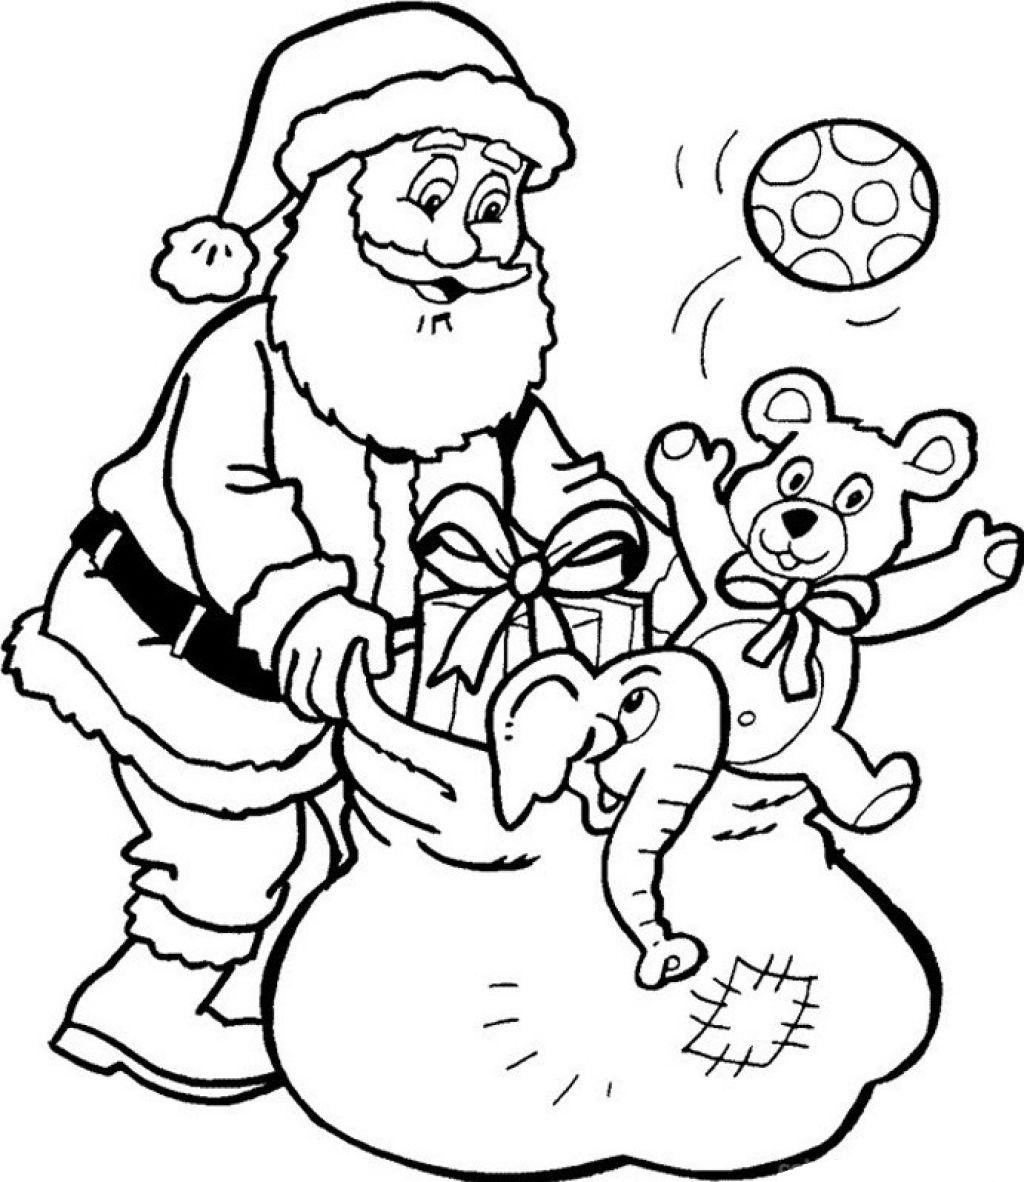 Santa Face Coloring Page With Claus Drawing At GetDrawings Com Free For Personal Use